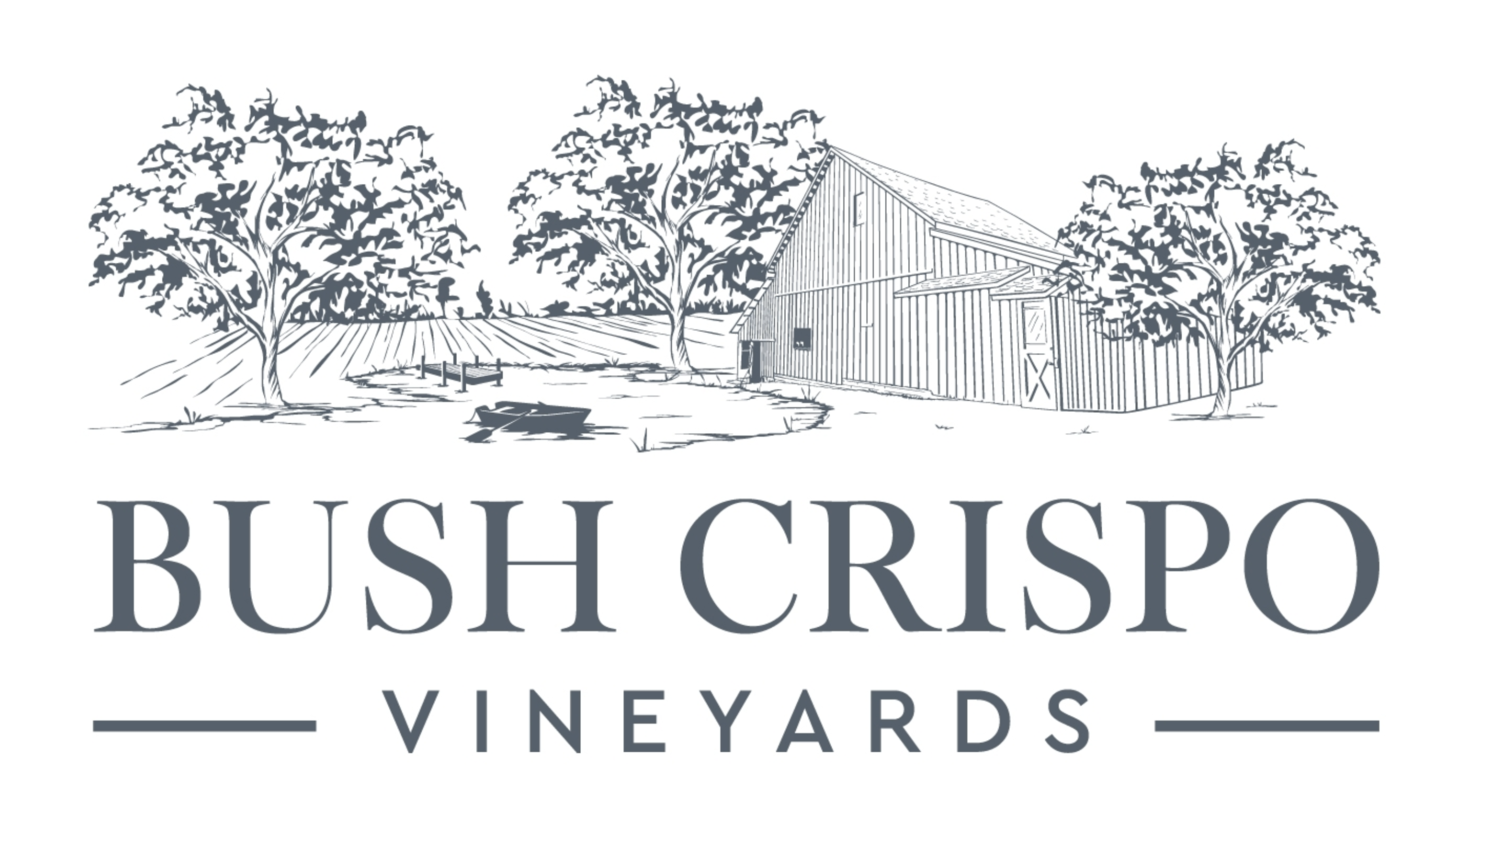 Bush Crispo Vineyards